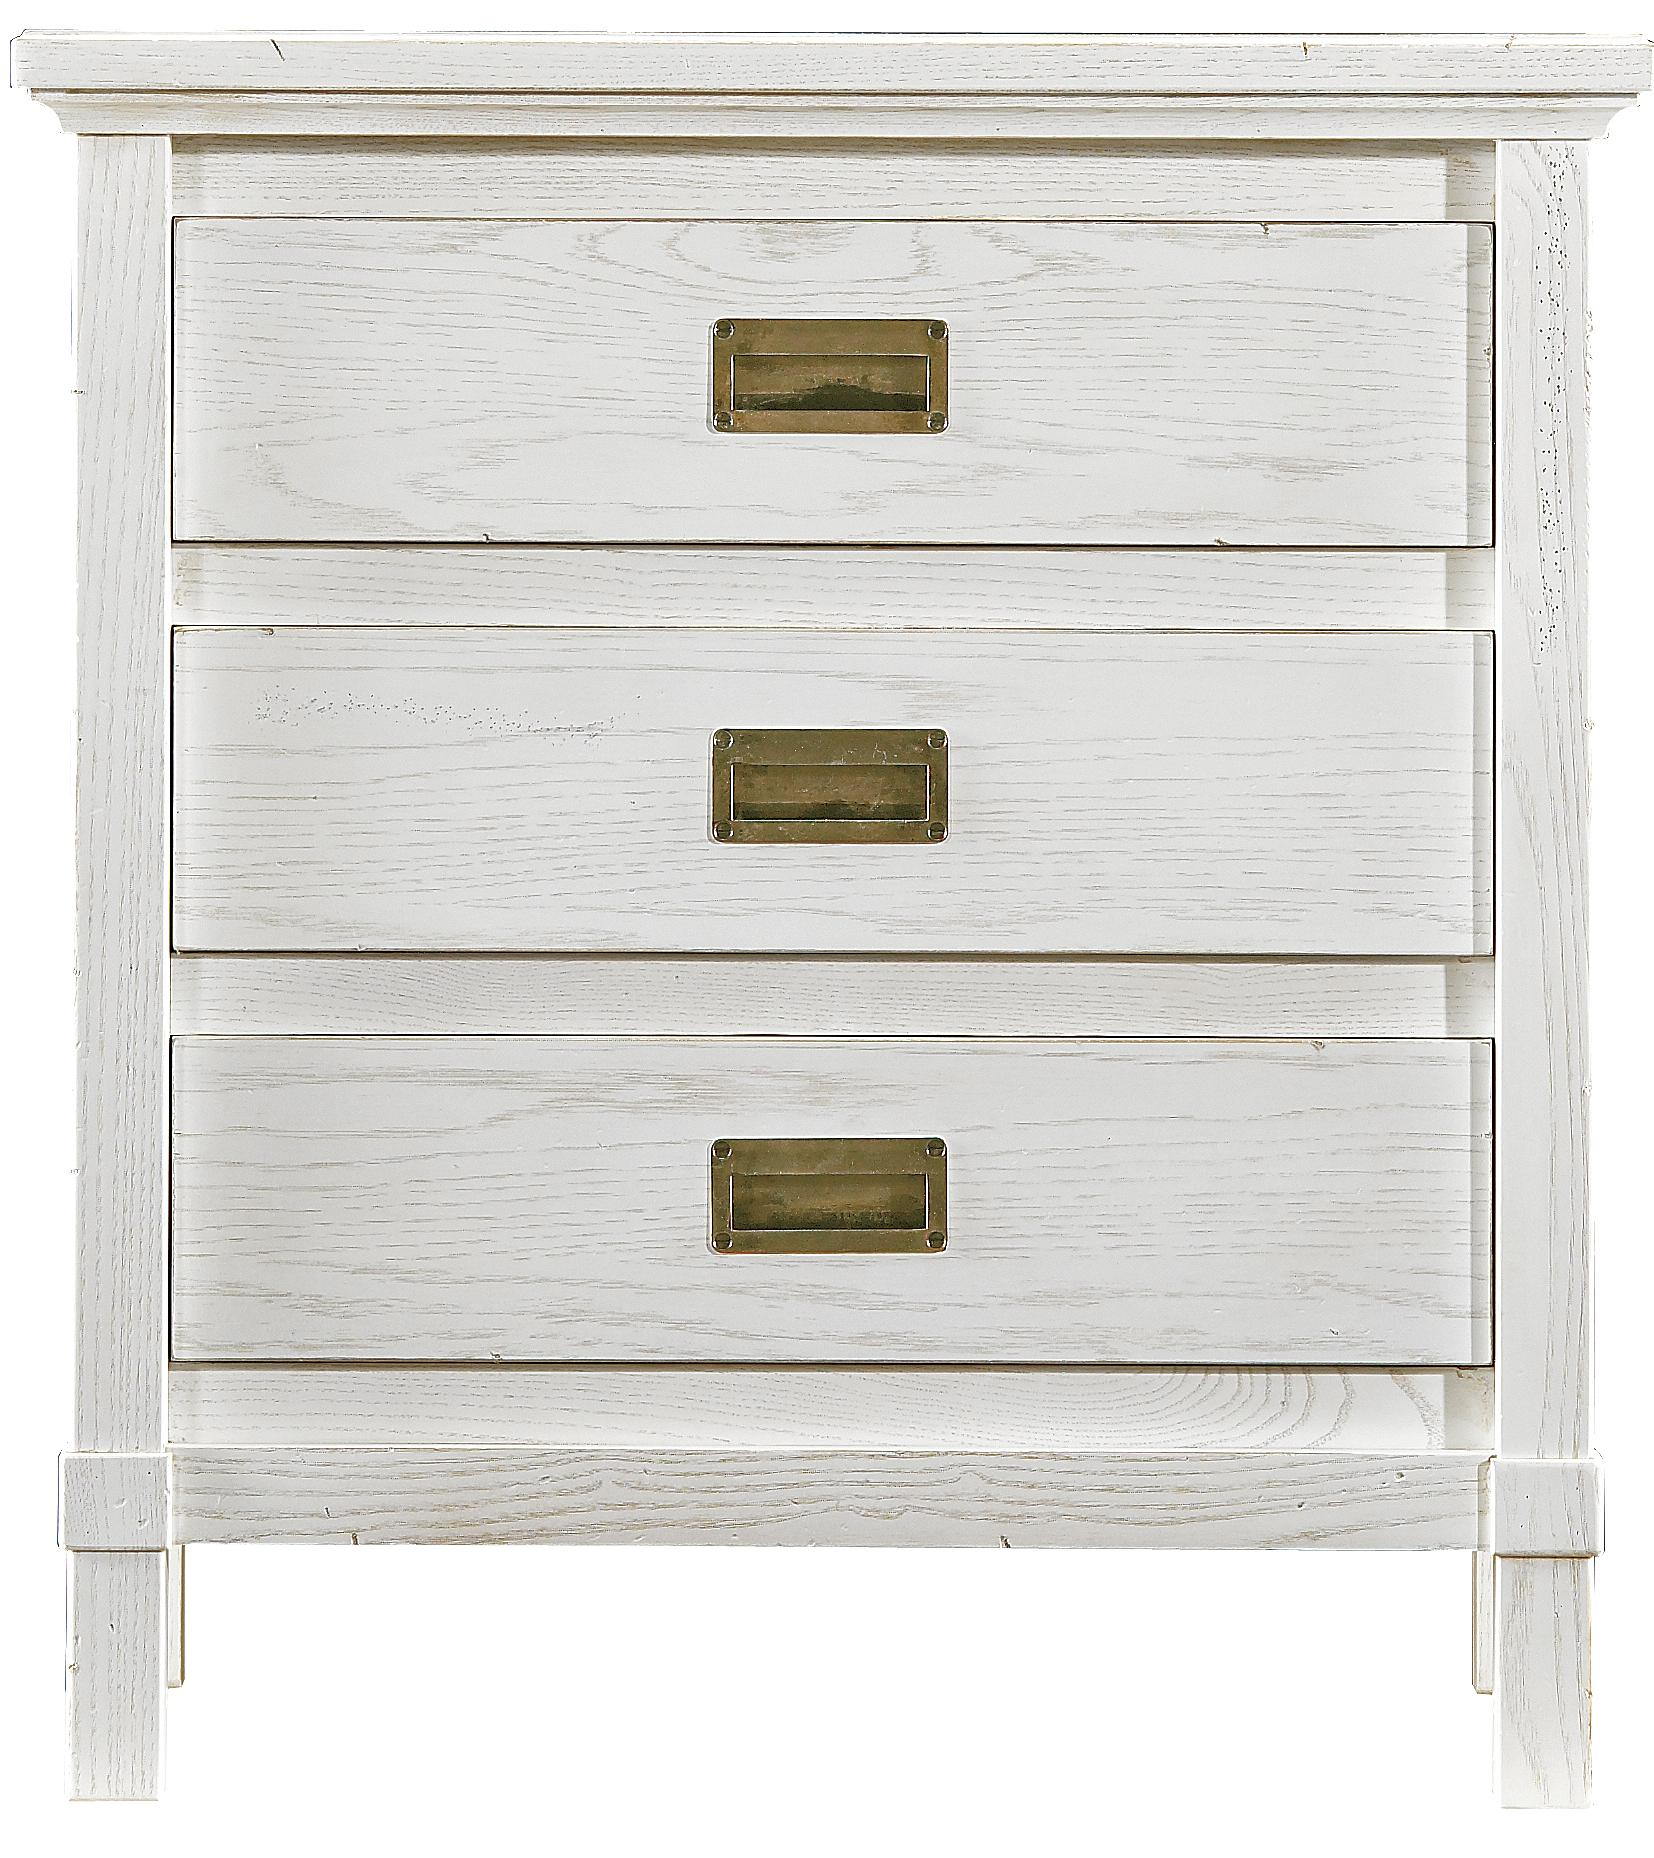 Stanley Furniture Coastal Living Resort Haven's Harbor Night Stand - Item Number: 062-A3-80